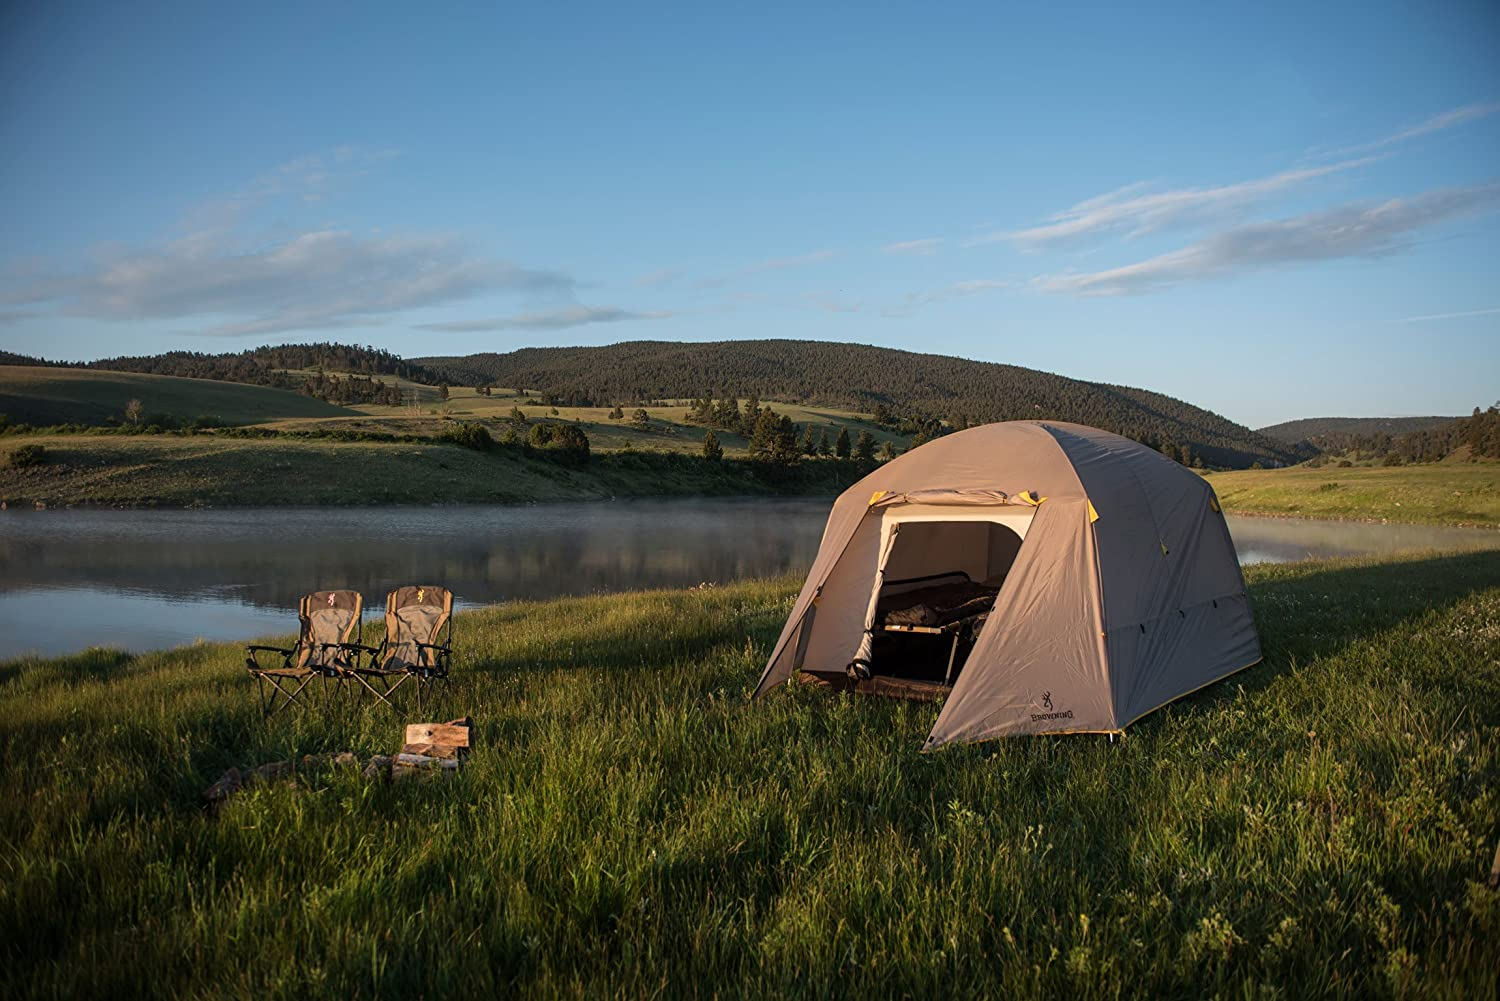 Cold Weather Tents : Best tents for cold weather camping sleeping with air